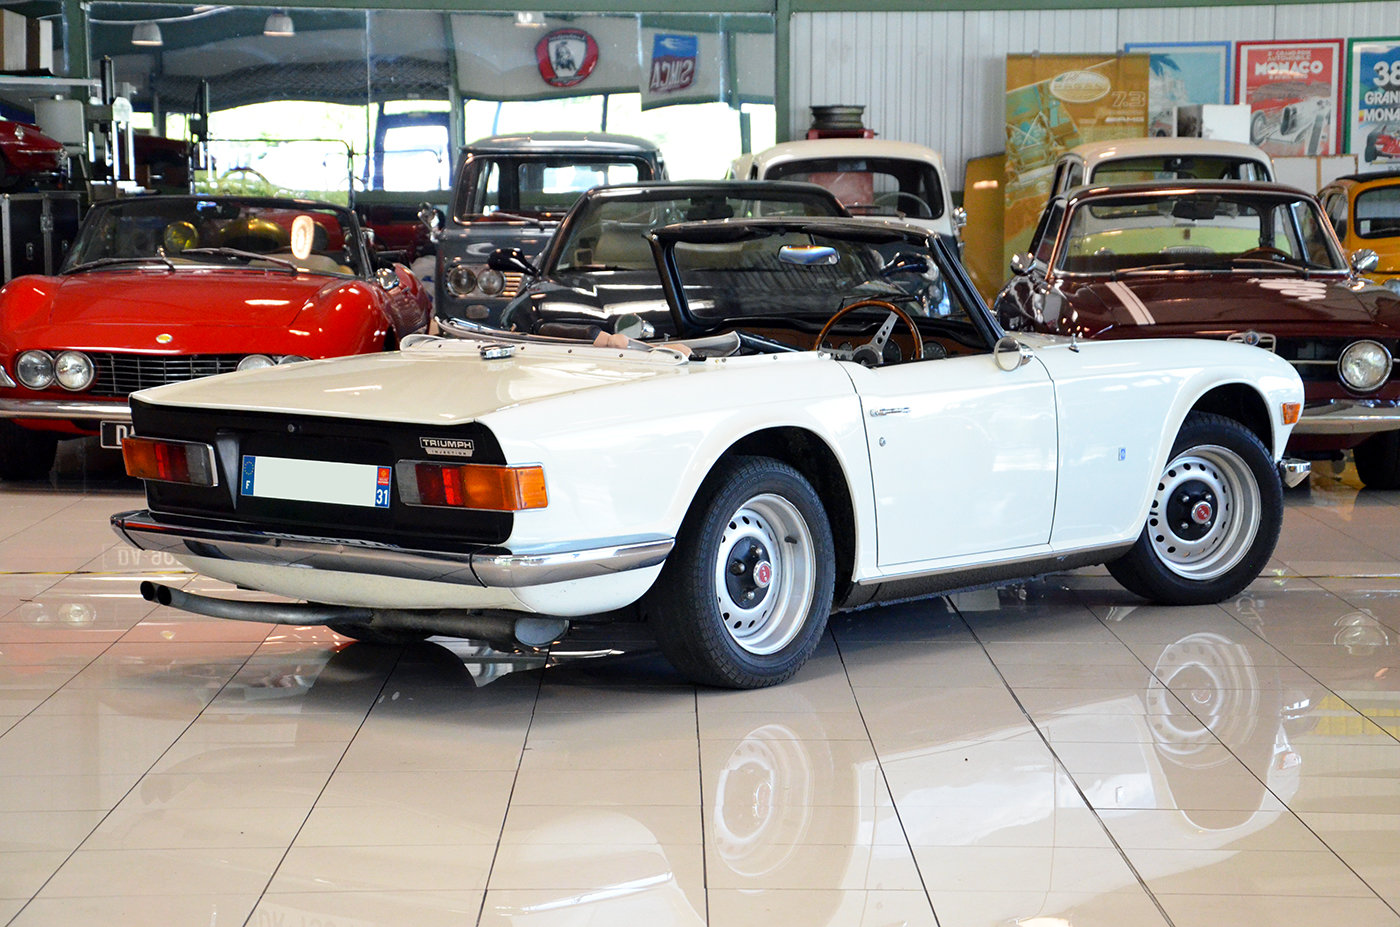 1973 Triumph TR6 - RHD - Superb + Hard top For Sale (picture 3 of 6)